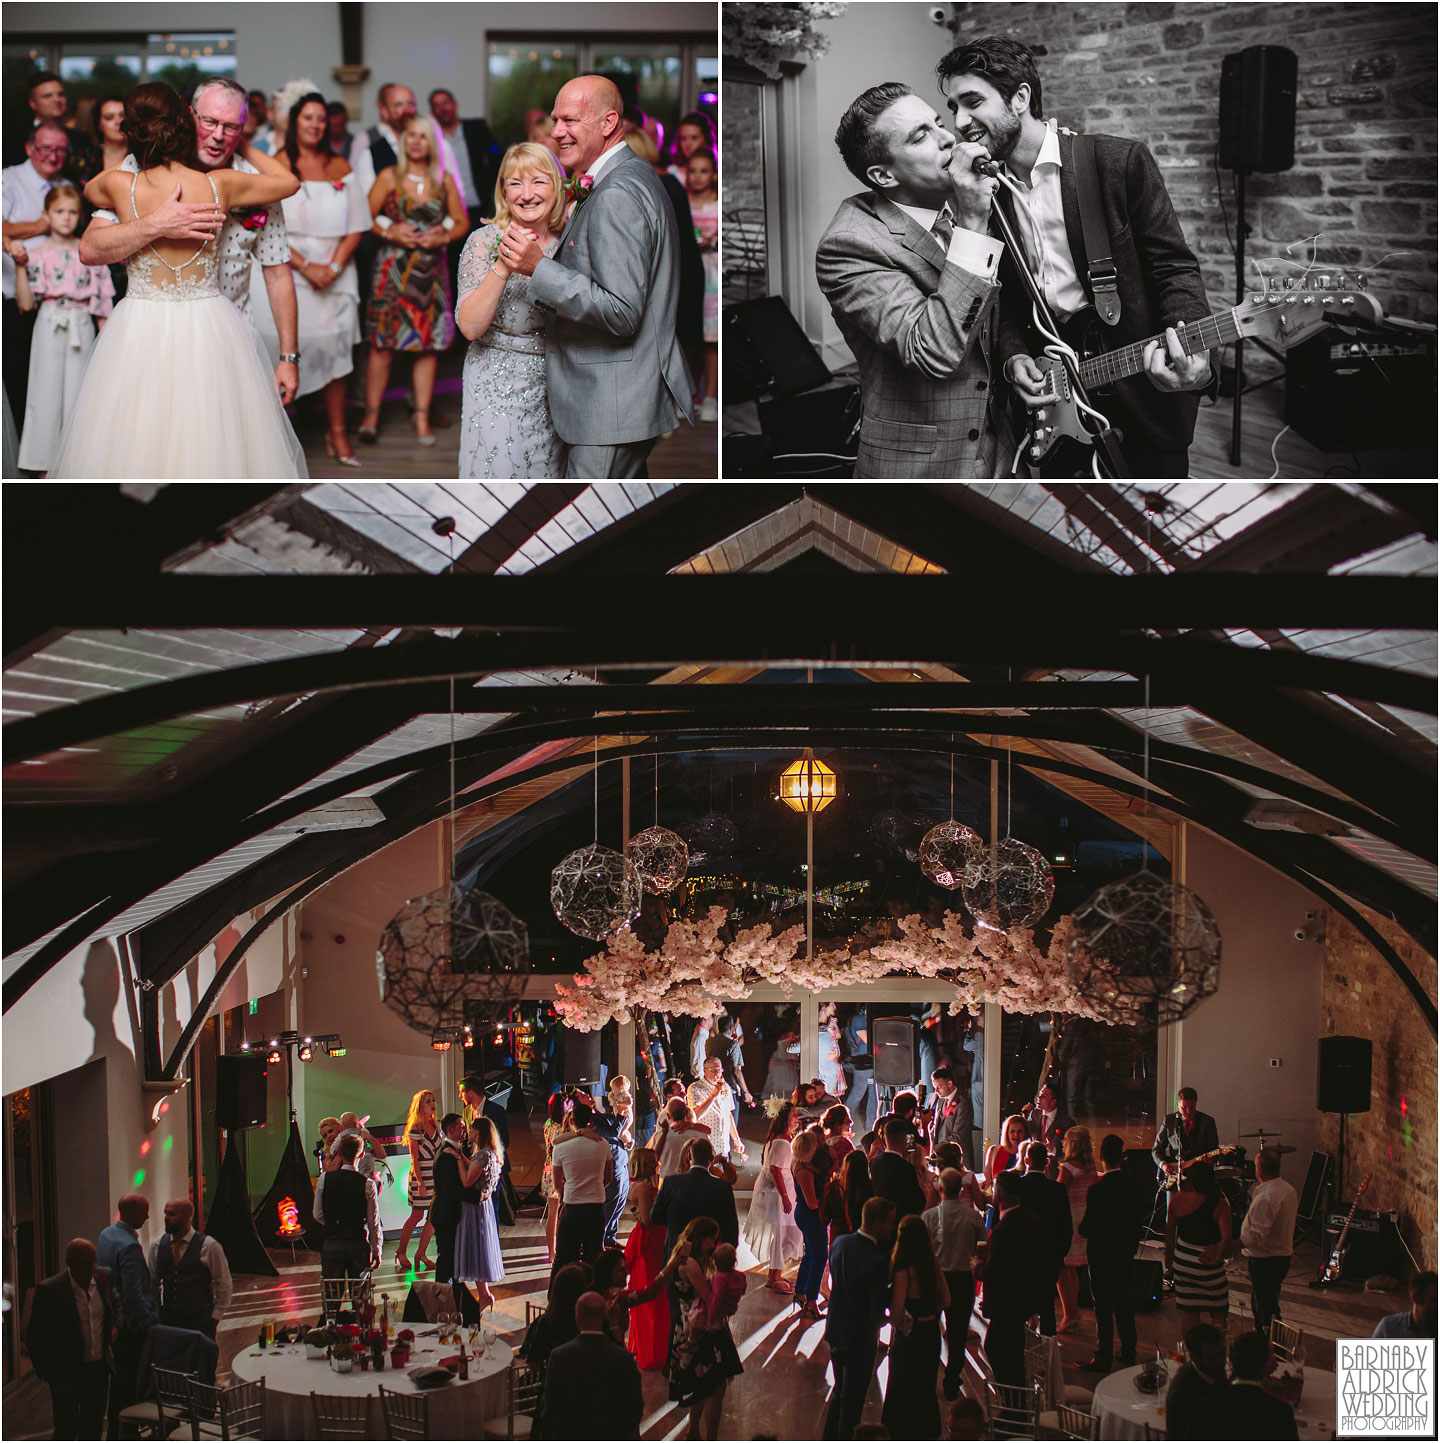 Evening function band and dancing at Yorkshire Wedding Barn near Richmond